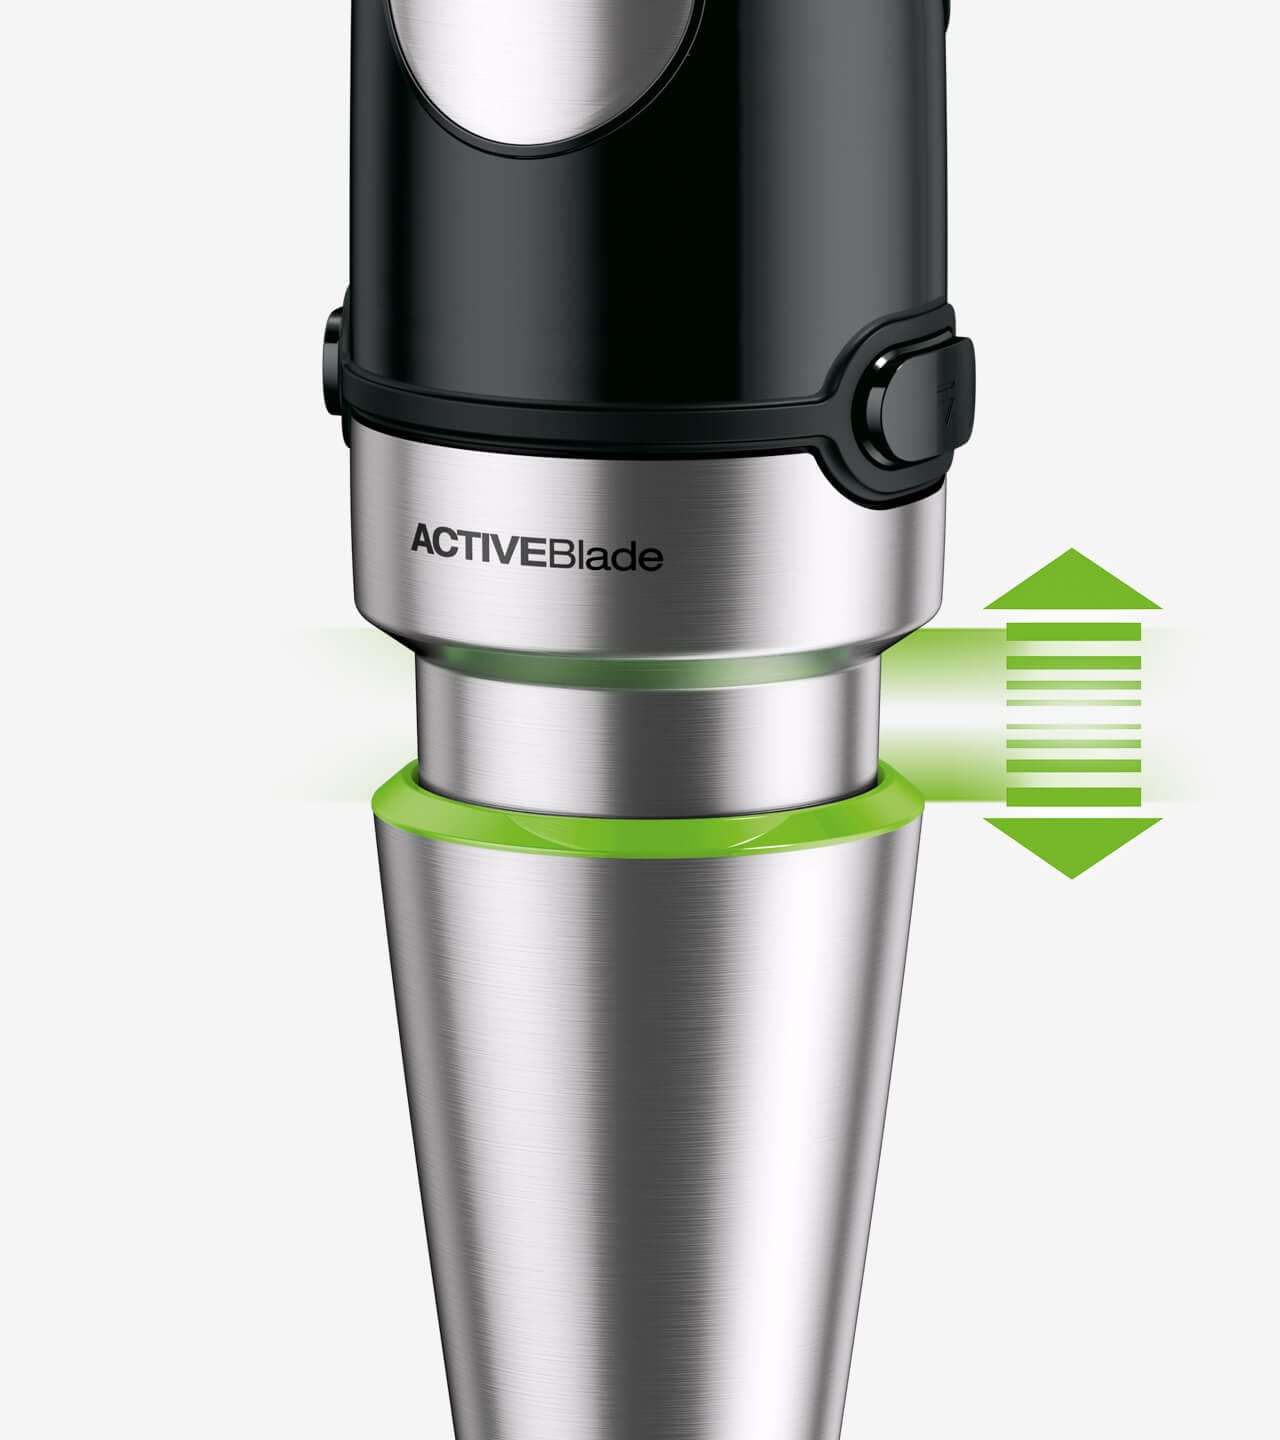 Braun MultiQuick 7 Hand blender with ActiveBlade Technology.